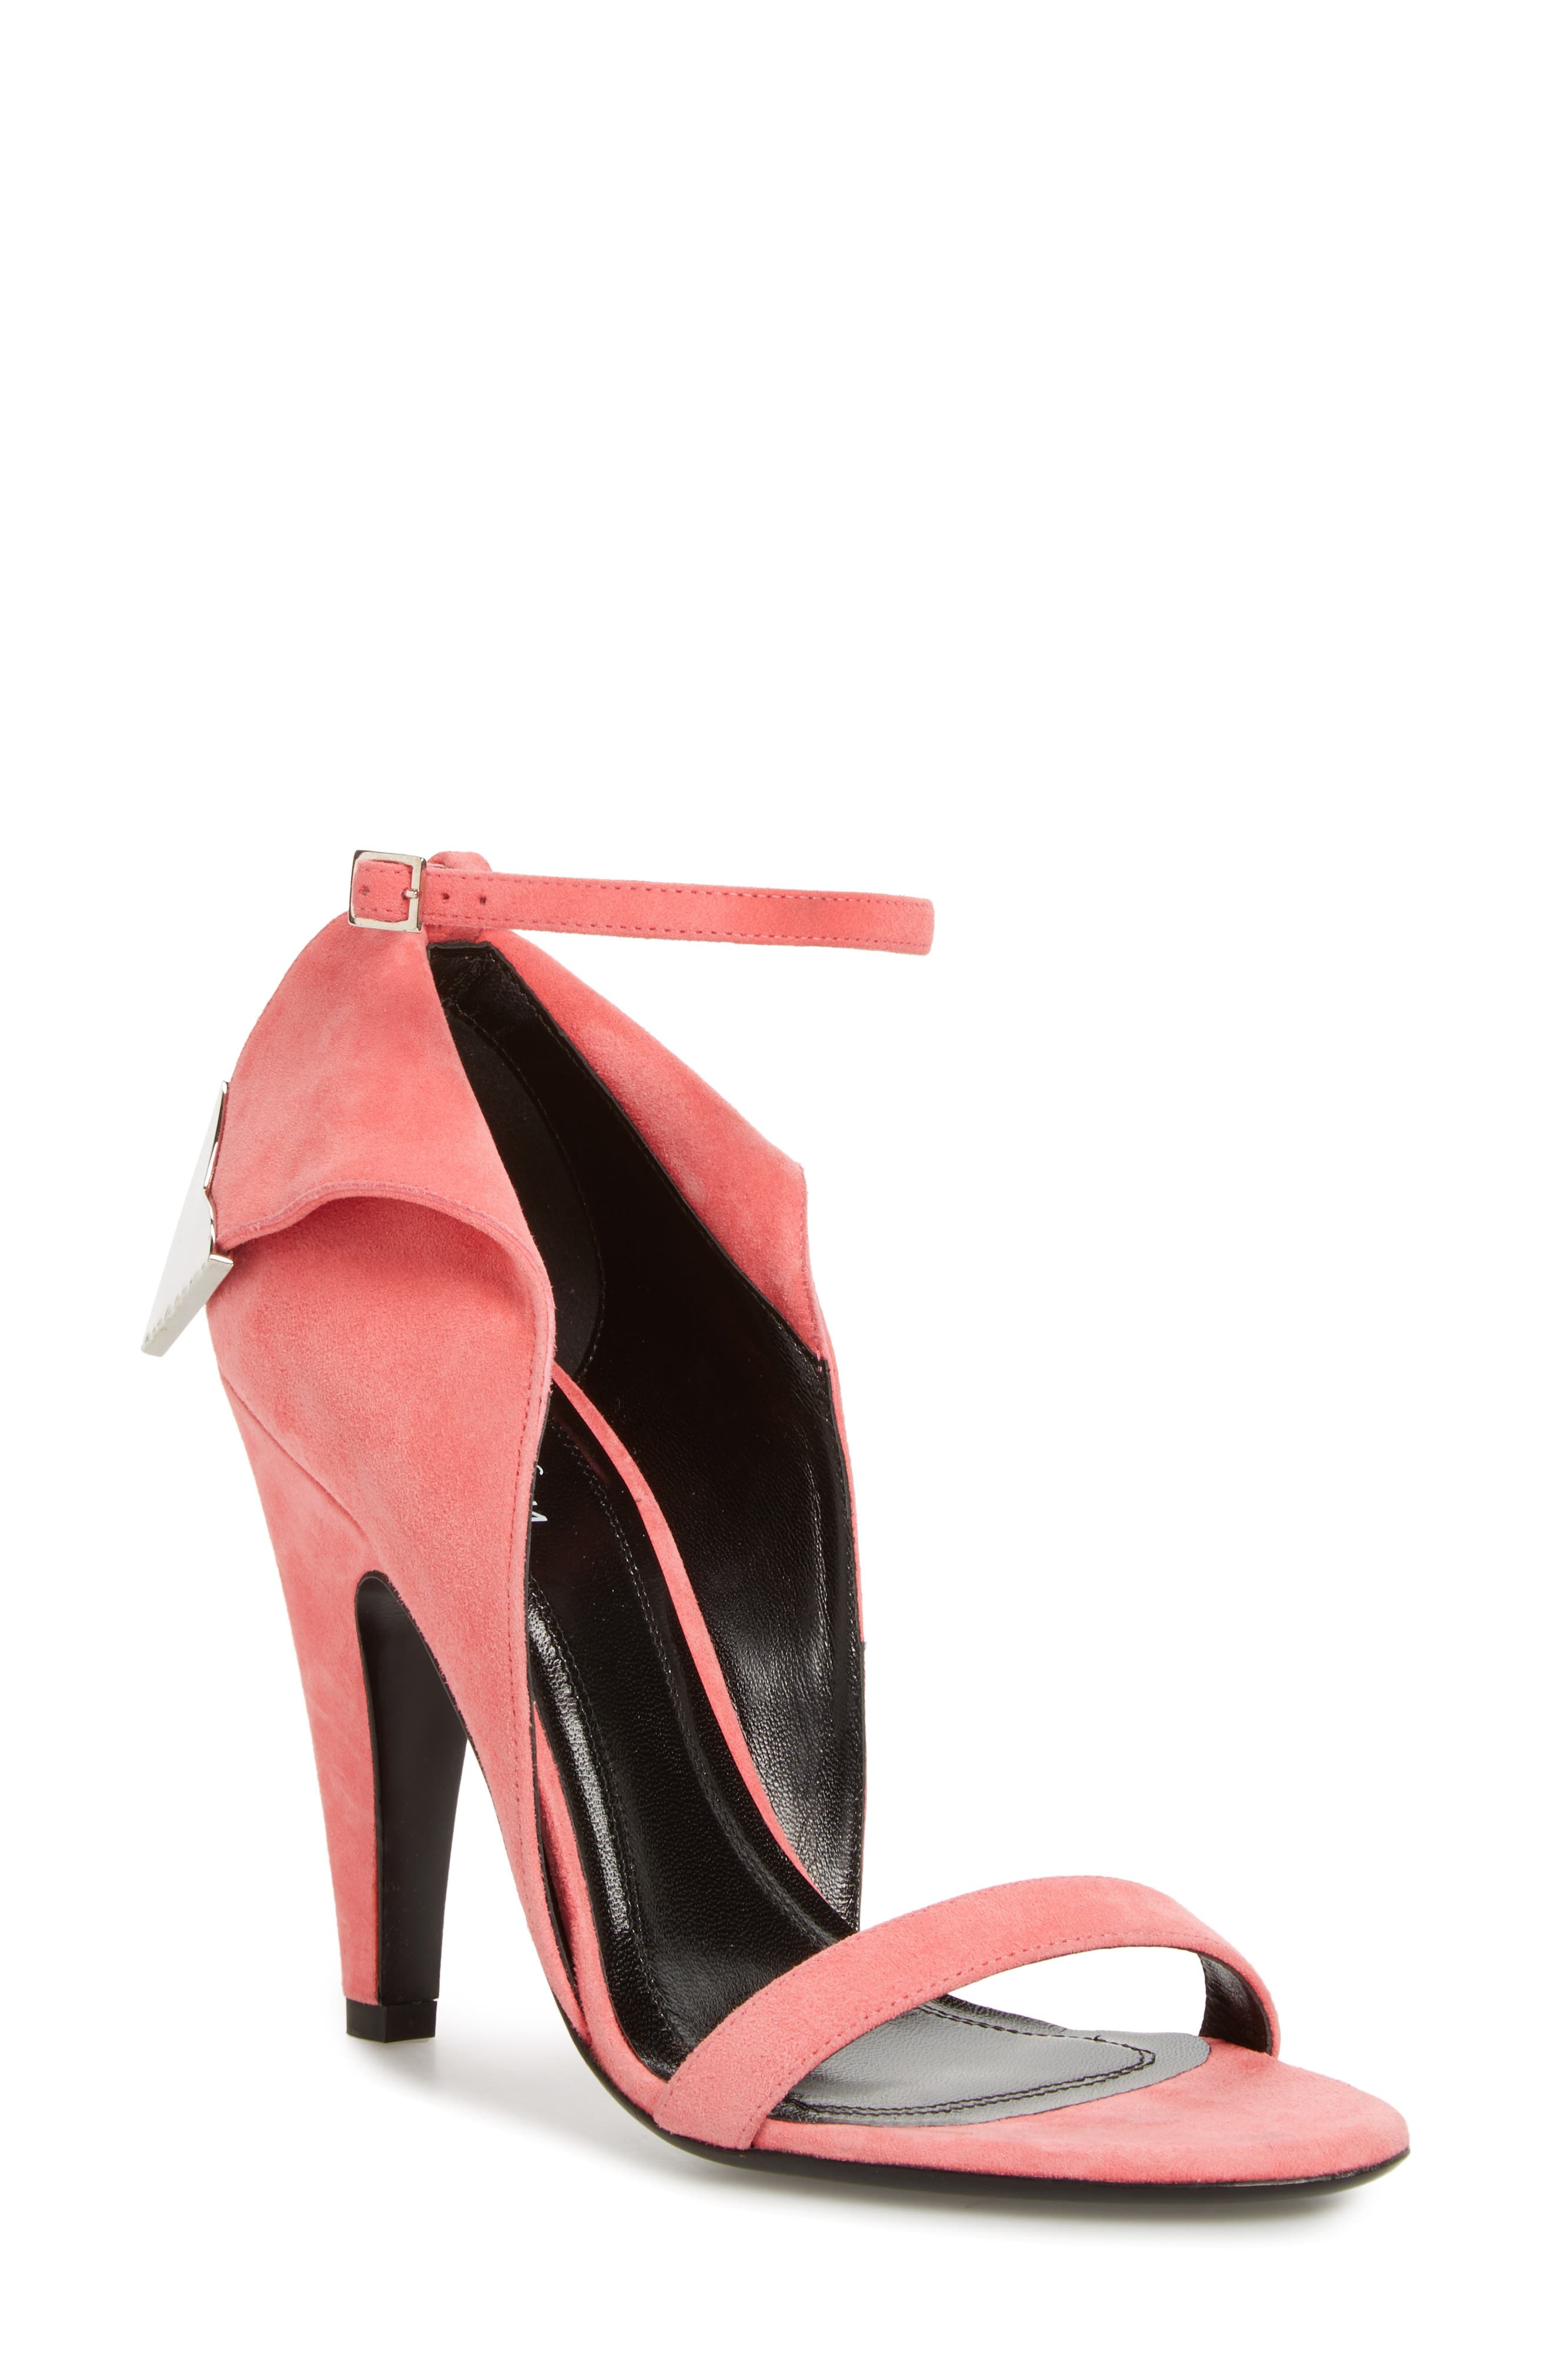 Leititia Ankle Strap Sandal,                             Main thumbnail 1, color,                             Blush